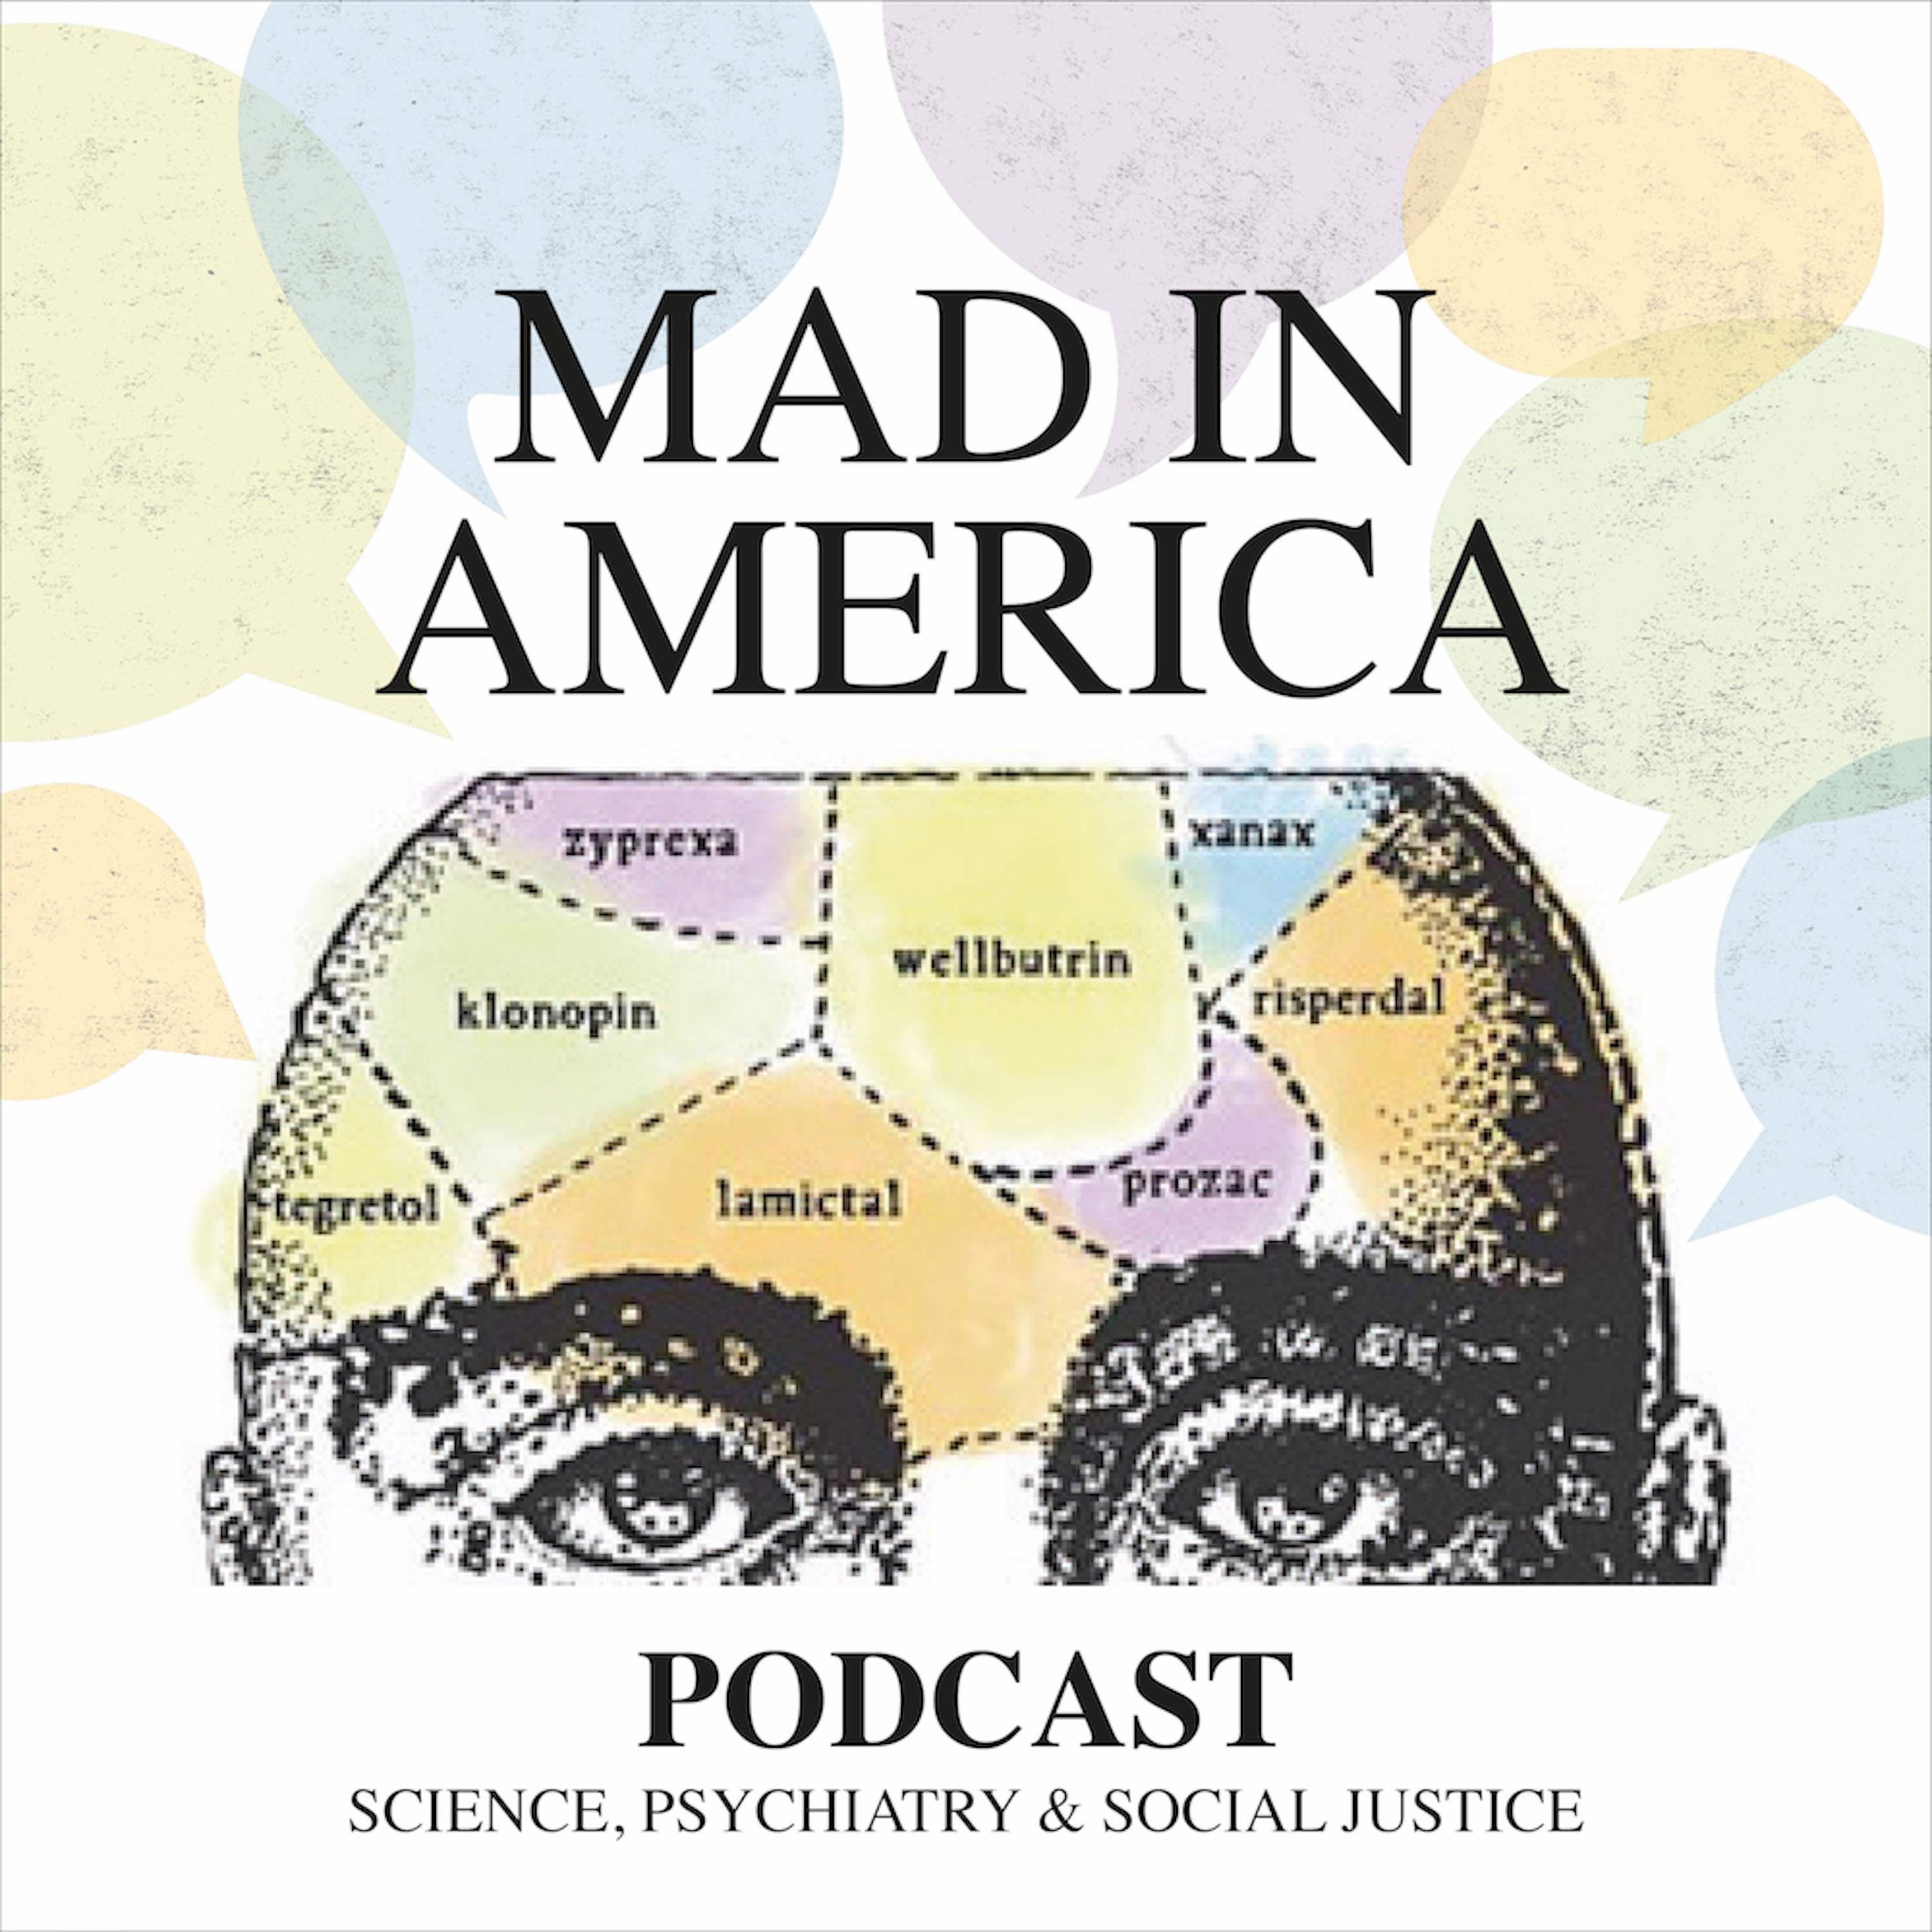 Mad in America: Rethinking Mental Health - Kelly Brogan - The Science and Pseudoscience of Women's Mental Health